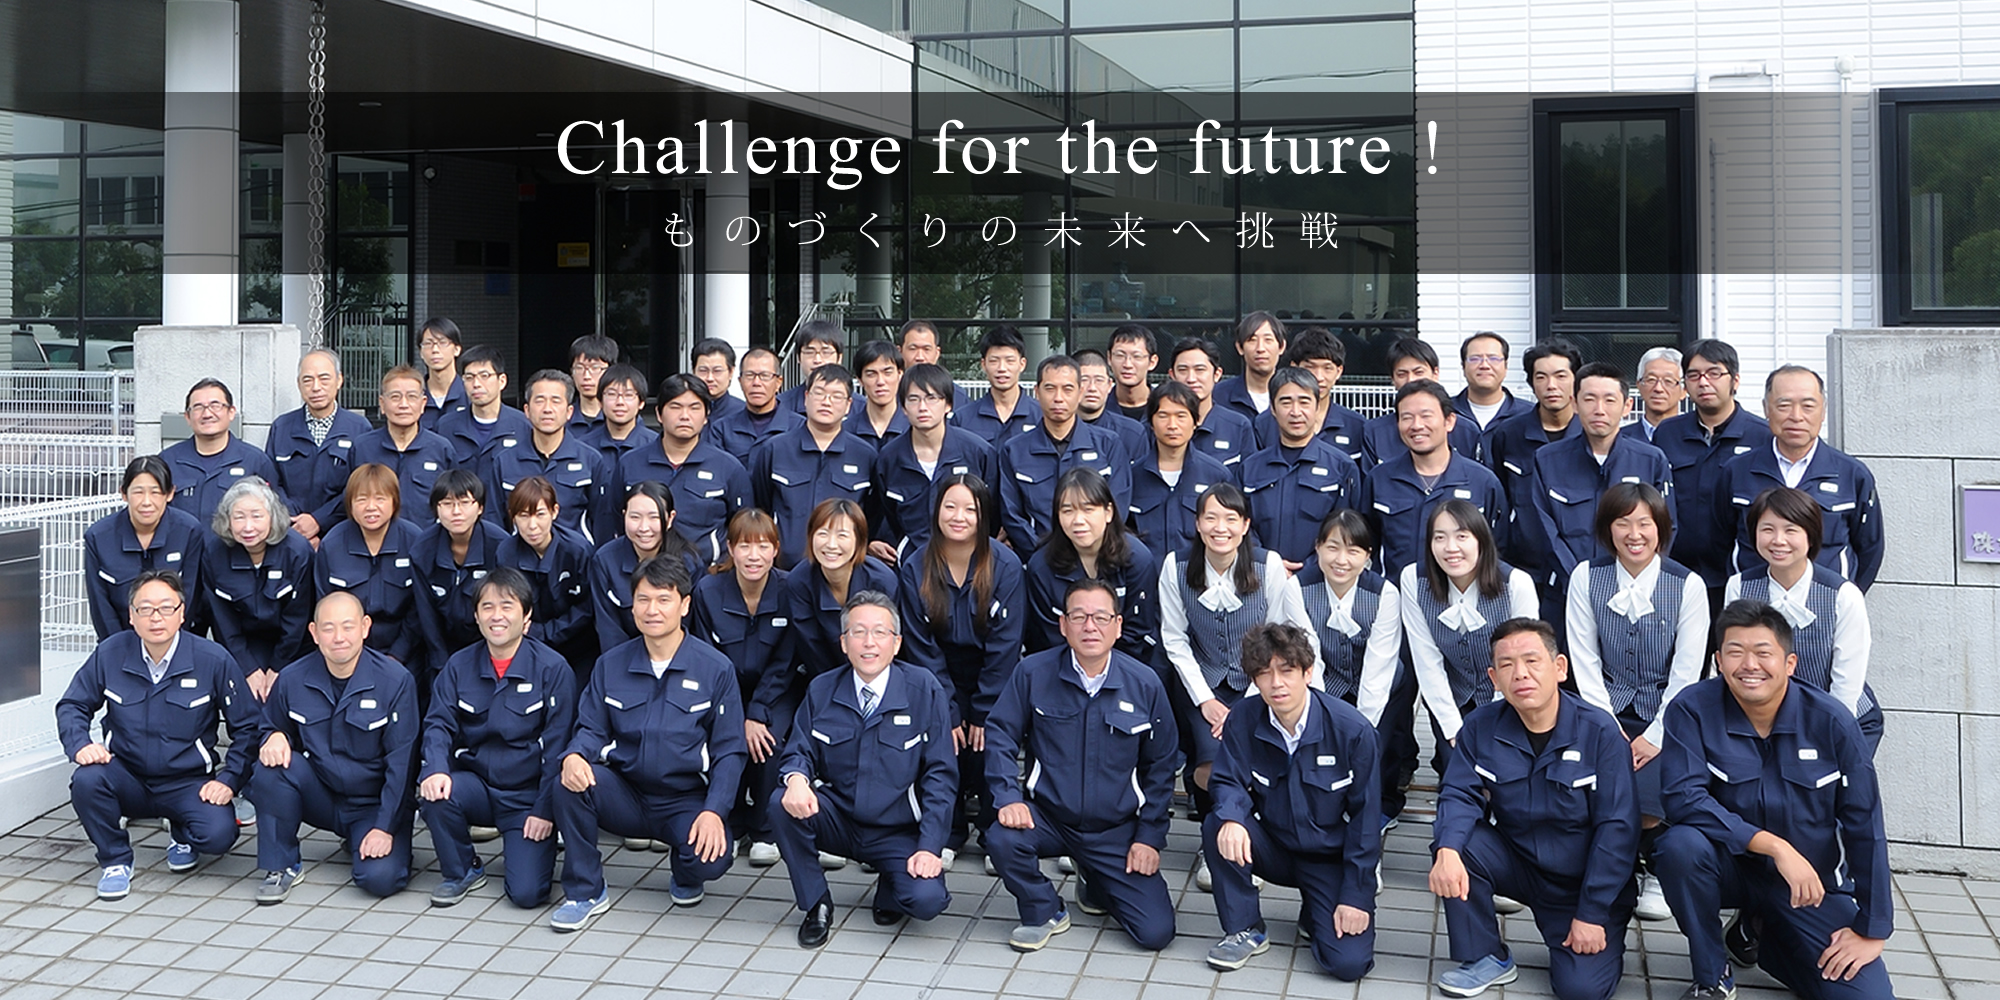 Challenge for the future ! ものづくりの未来へ挑戦